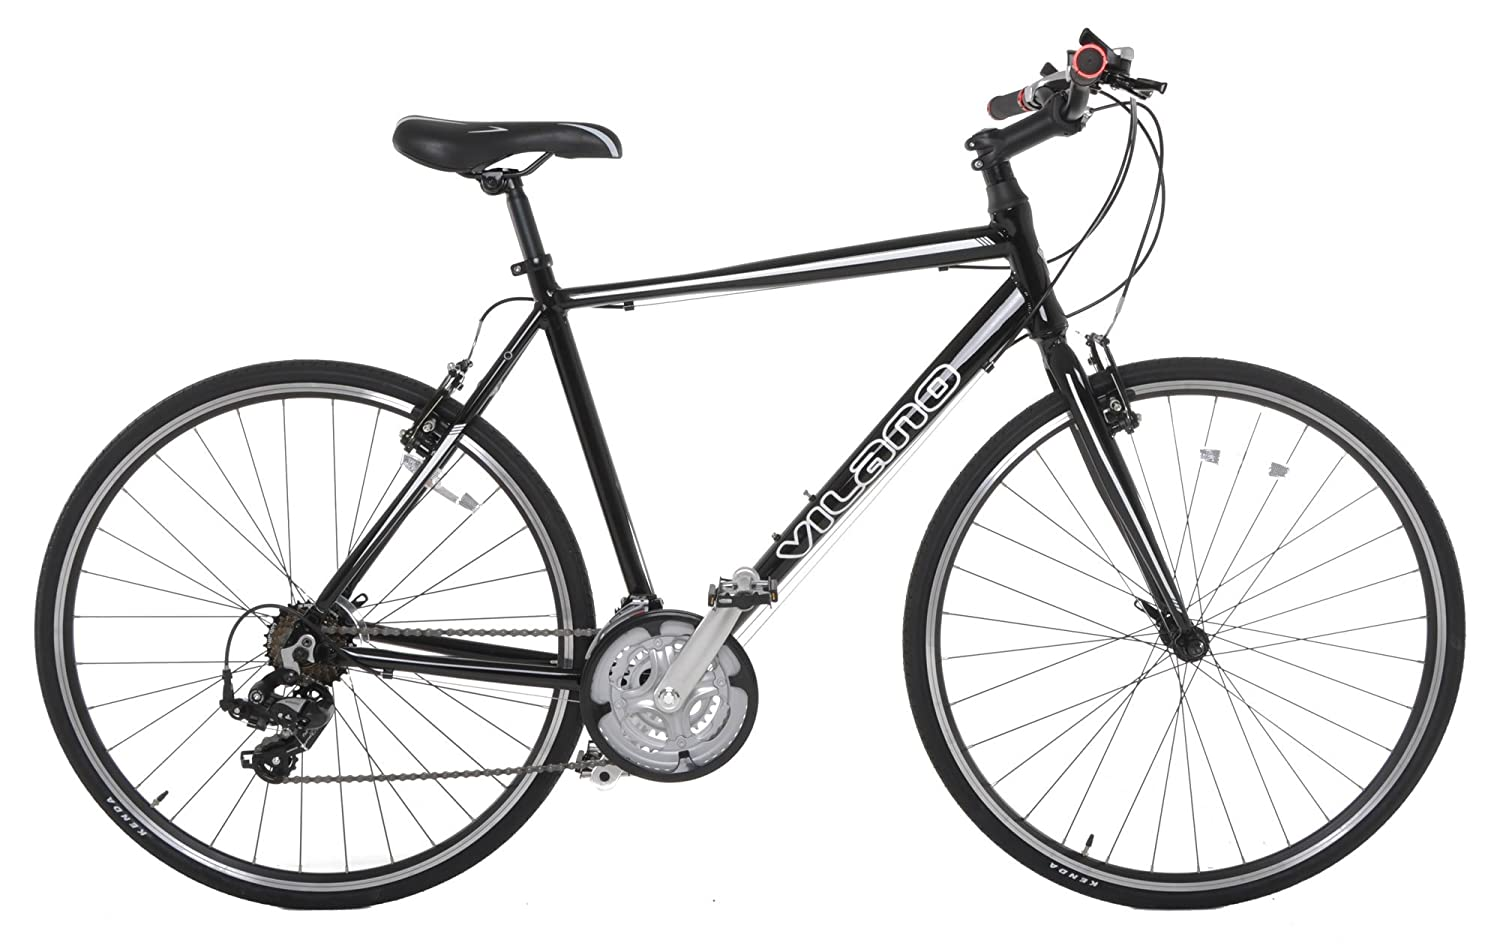 Bikes Reviews Hybrid hybrid bike comes at a